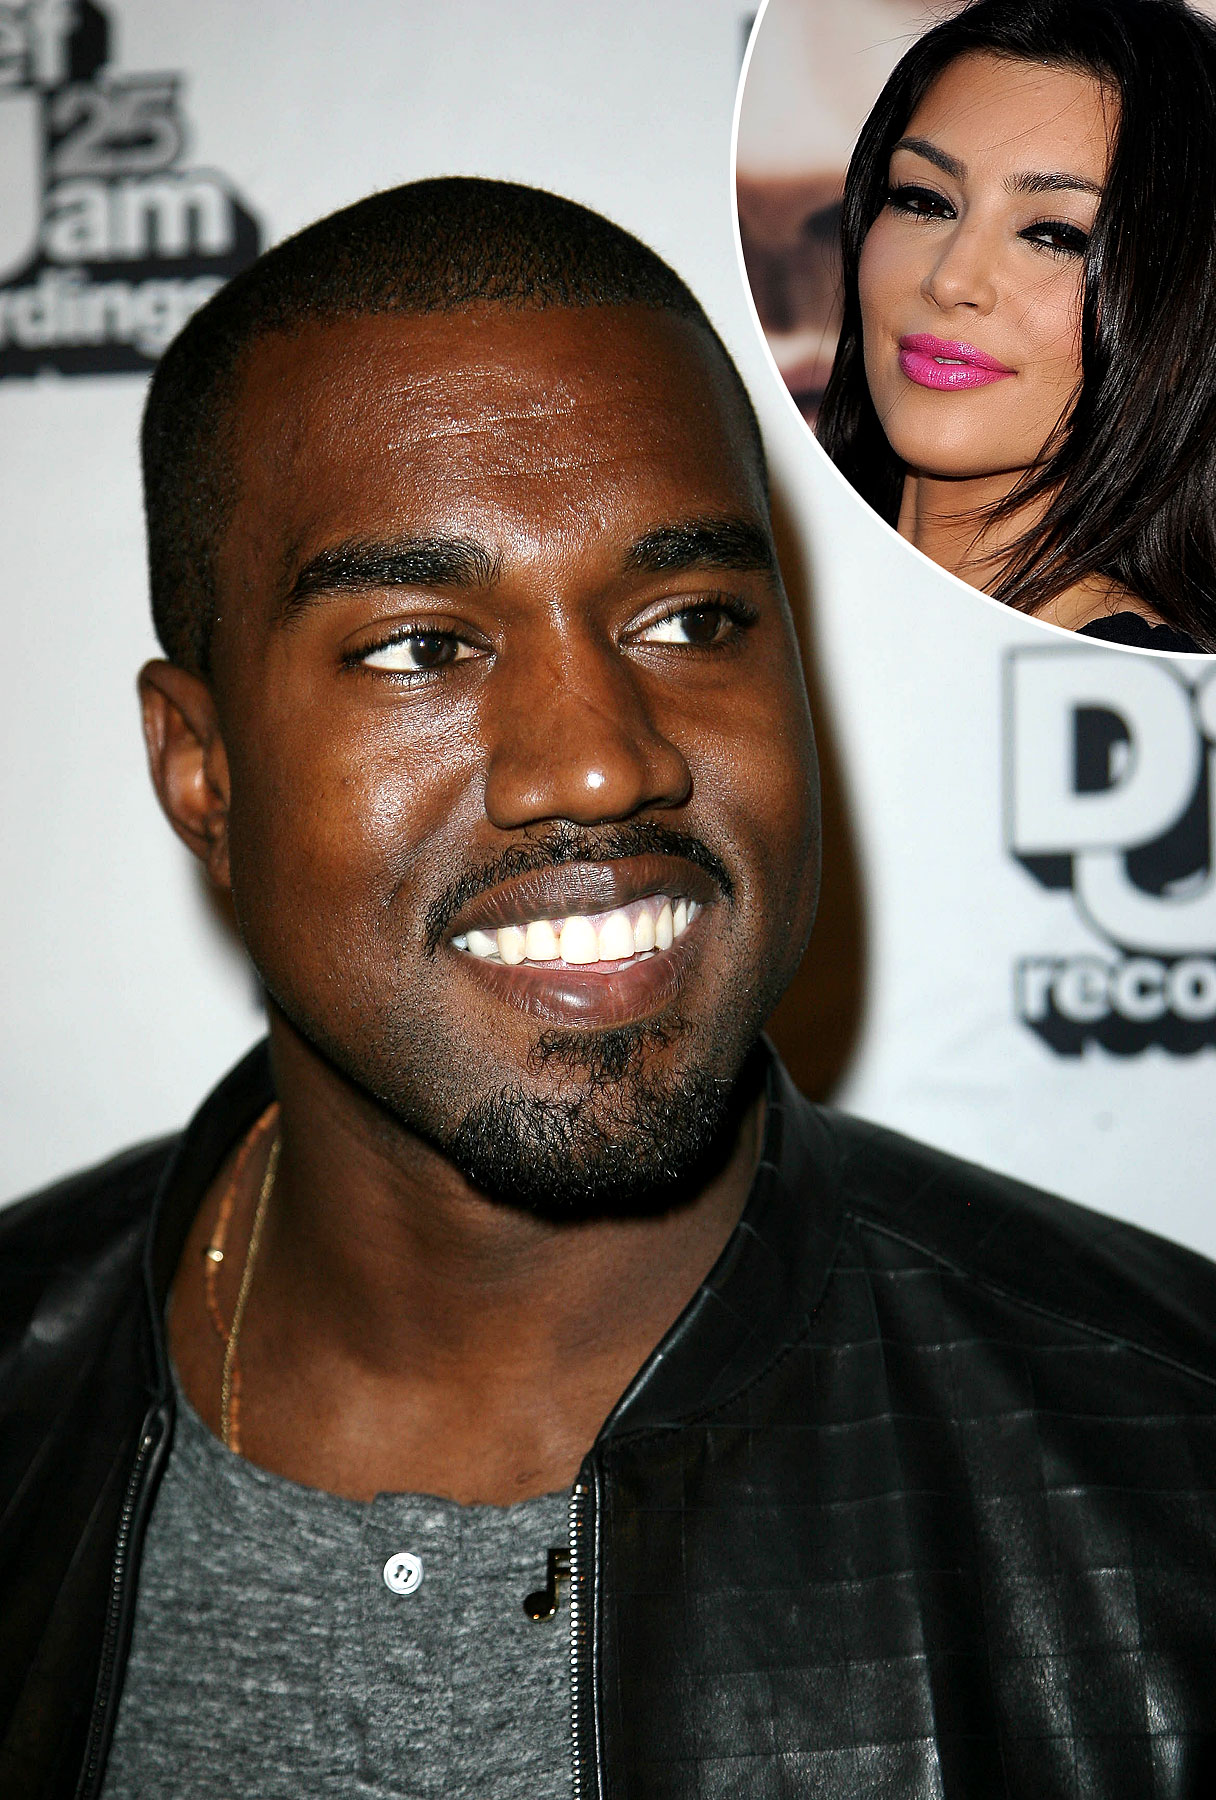 Did Kanye West Come Between Kim Kardashian and Reggie Bush?